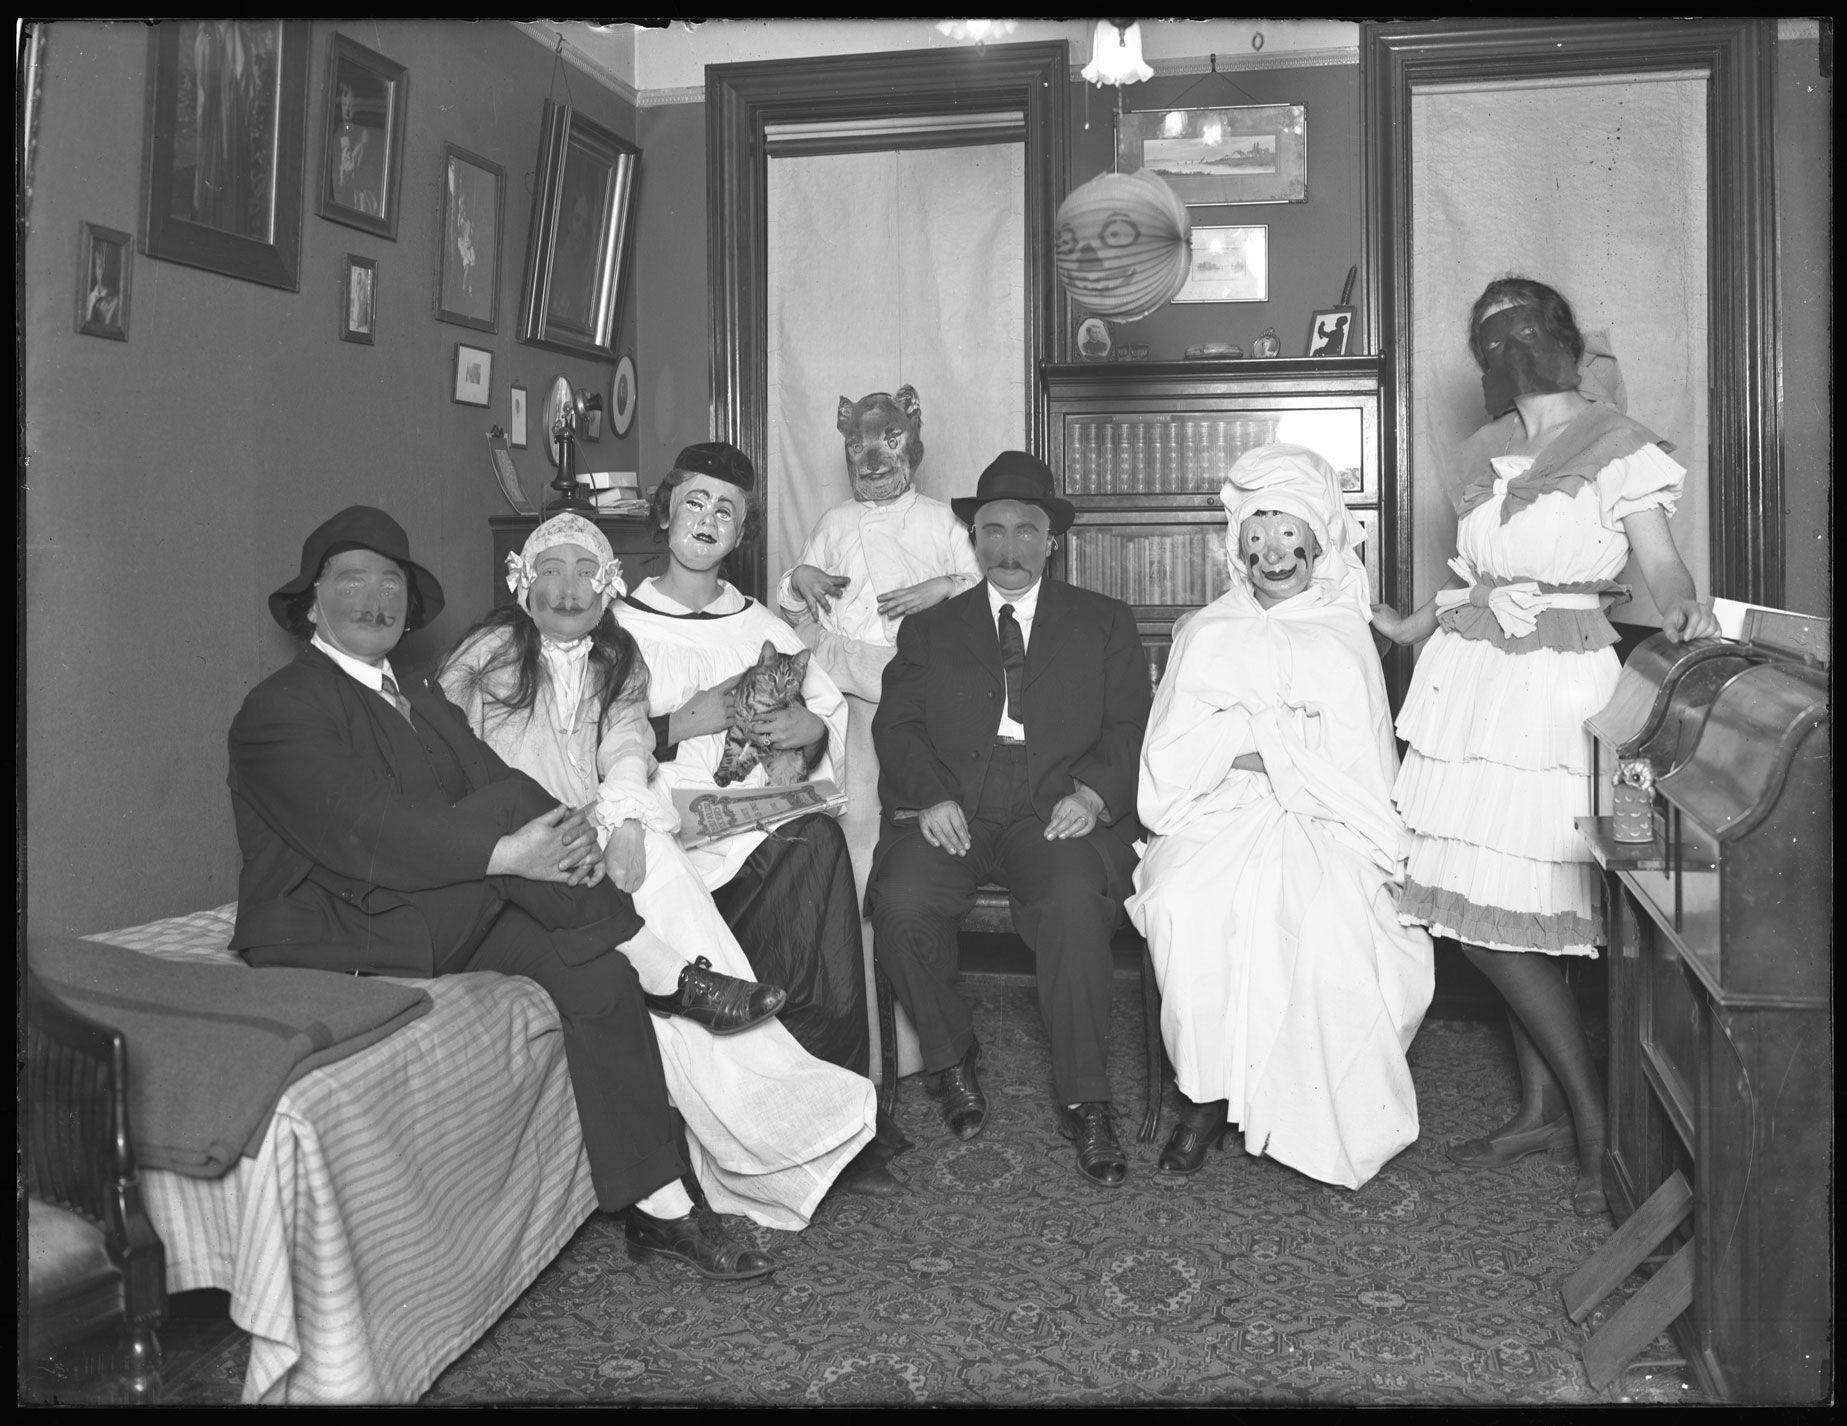 Unidentified group of people in Halloween costumes October 31 1916. Photographed for Mrs. Reiser by William Davis Hassler. PR 083 New-York Historical ...  sc 1 st  Pinterest & Unidentified group of people in Halloween costumes October 31 1916 ...